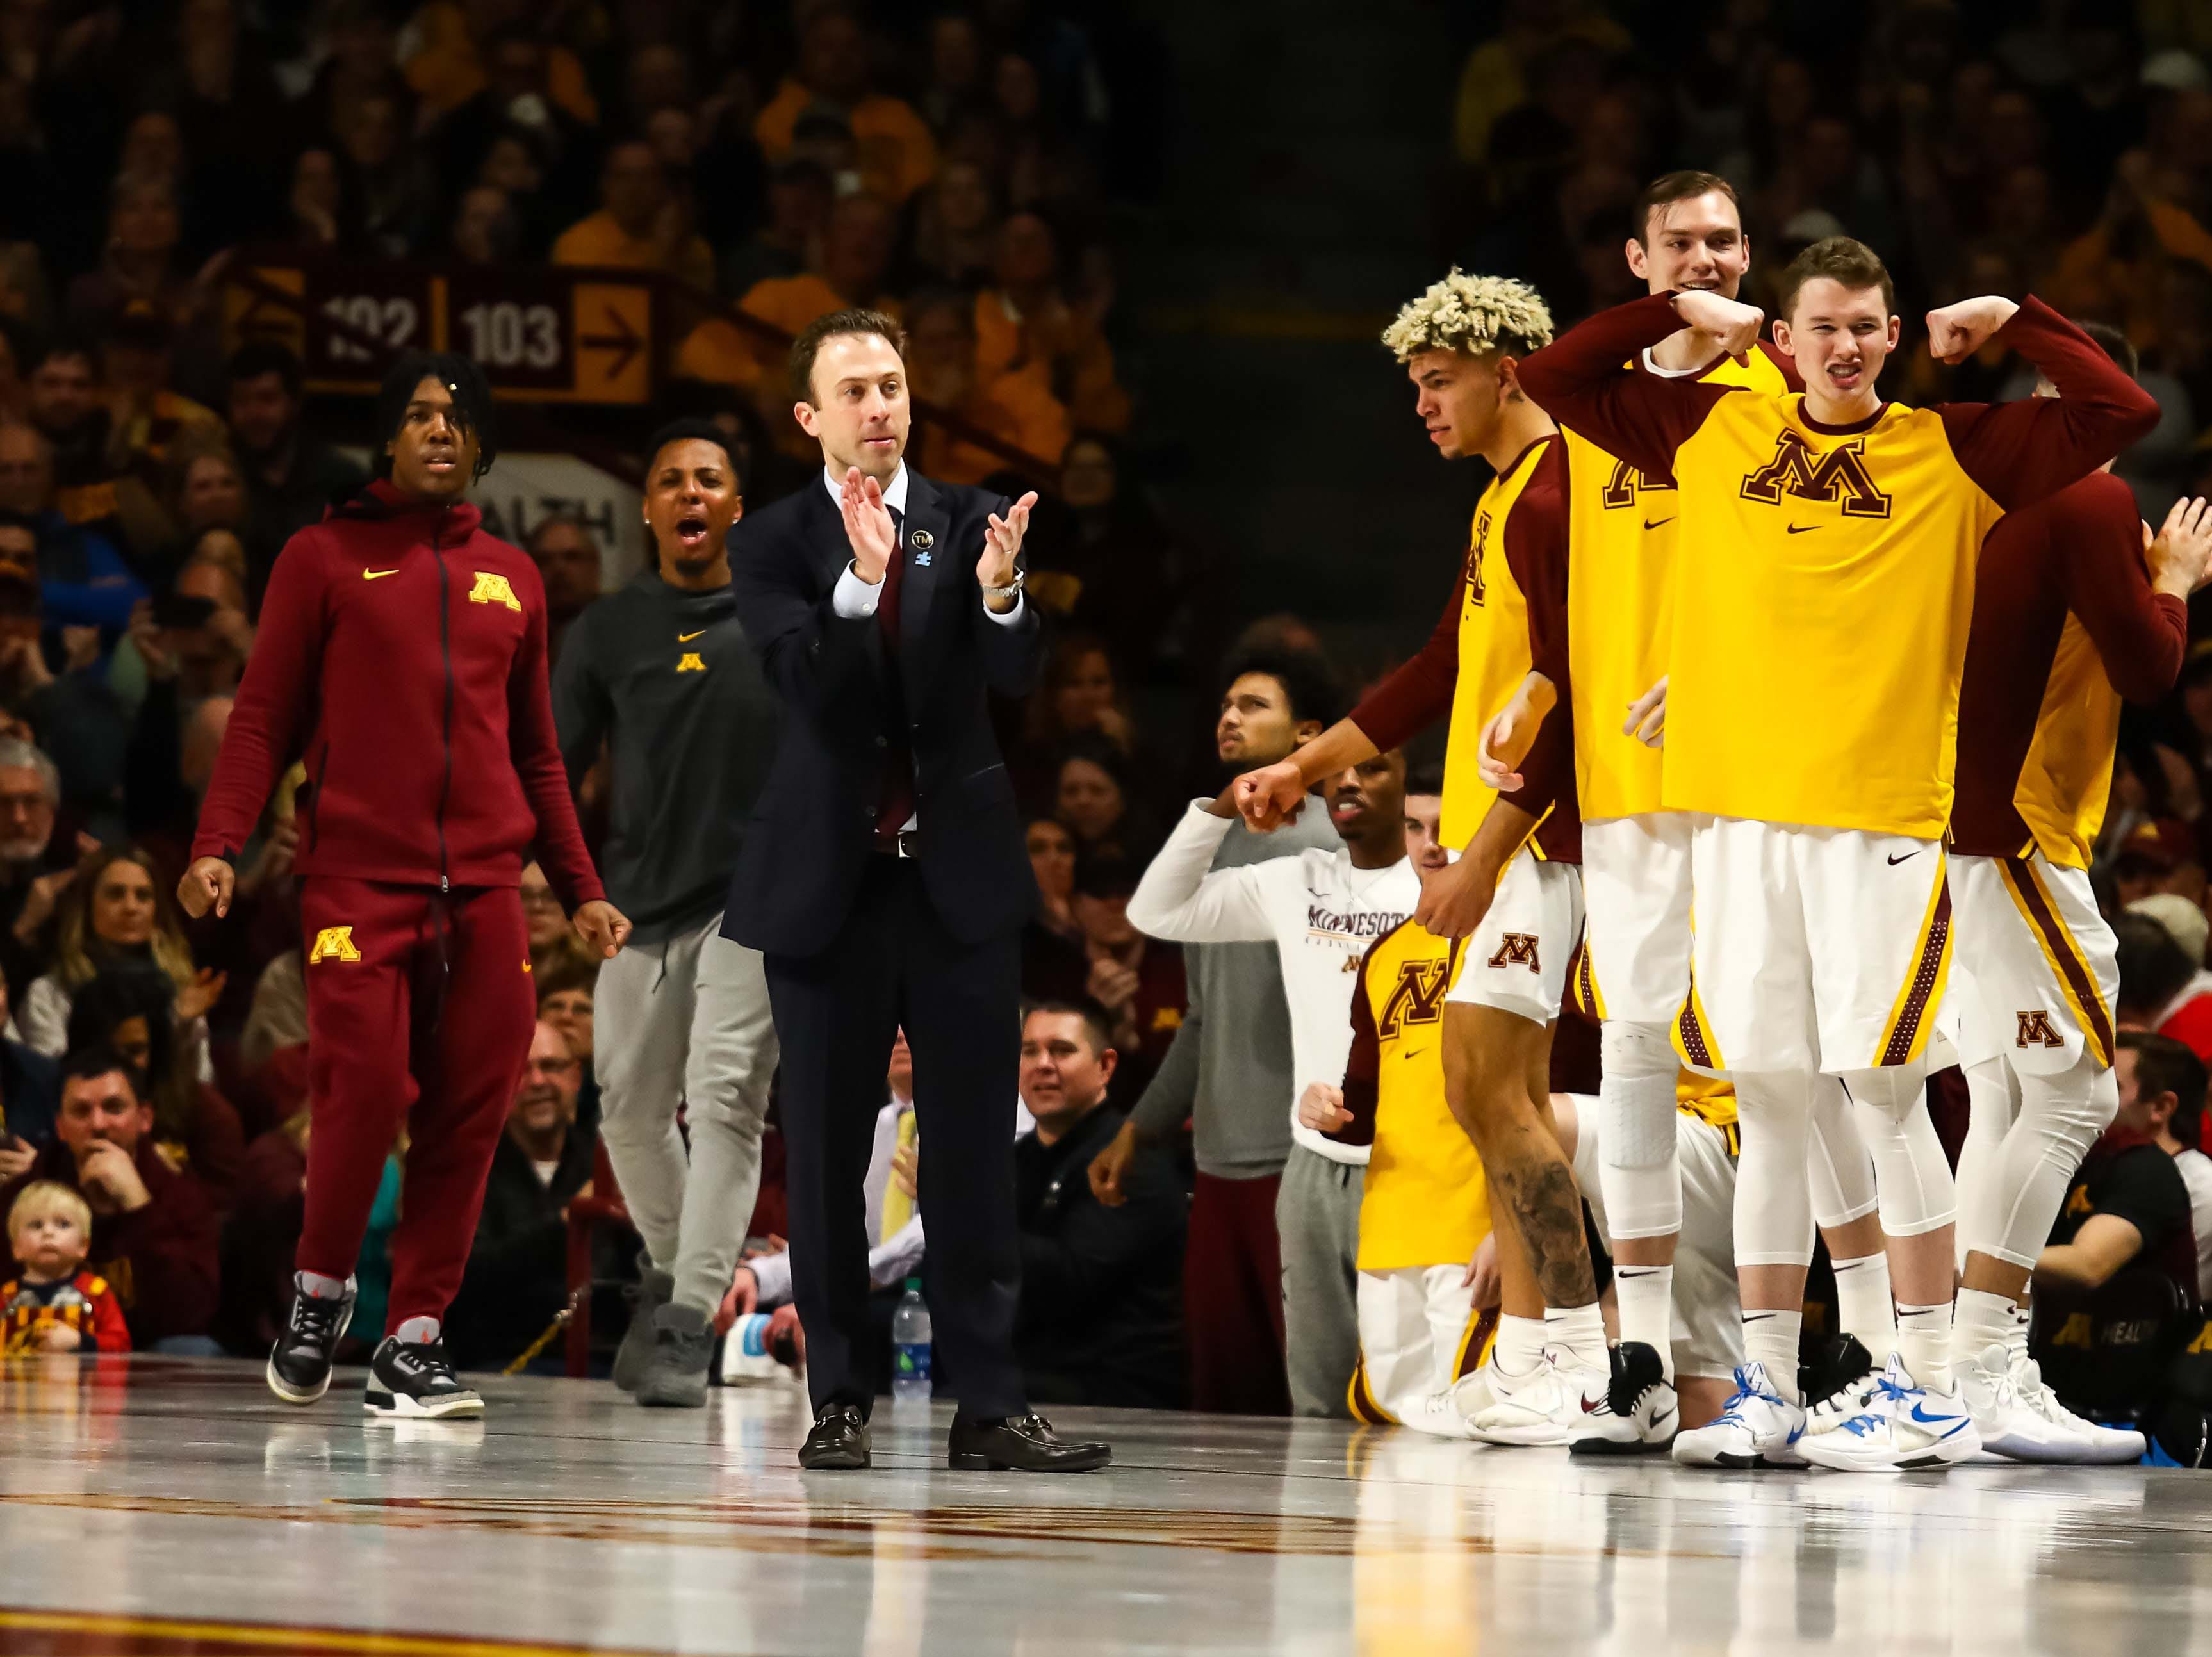 Feb 16, 2019; Minneapolis, MN, USA; Minnesota Golden Gophers head coach Richard Pitino and his players react to a play against the Indiana Hoosiers in the second half at Williams Arena. The Minnesota Golden Gophers defeatd the Indiana Hoosiers 84-63. Mandatory Credit: David Berding-USA TODAY Sports